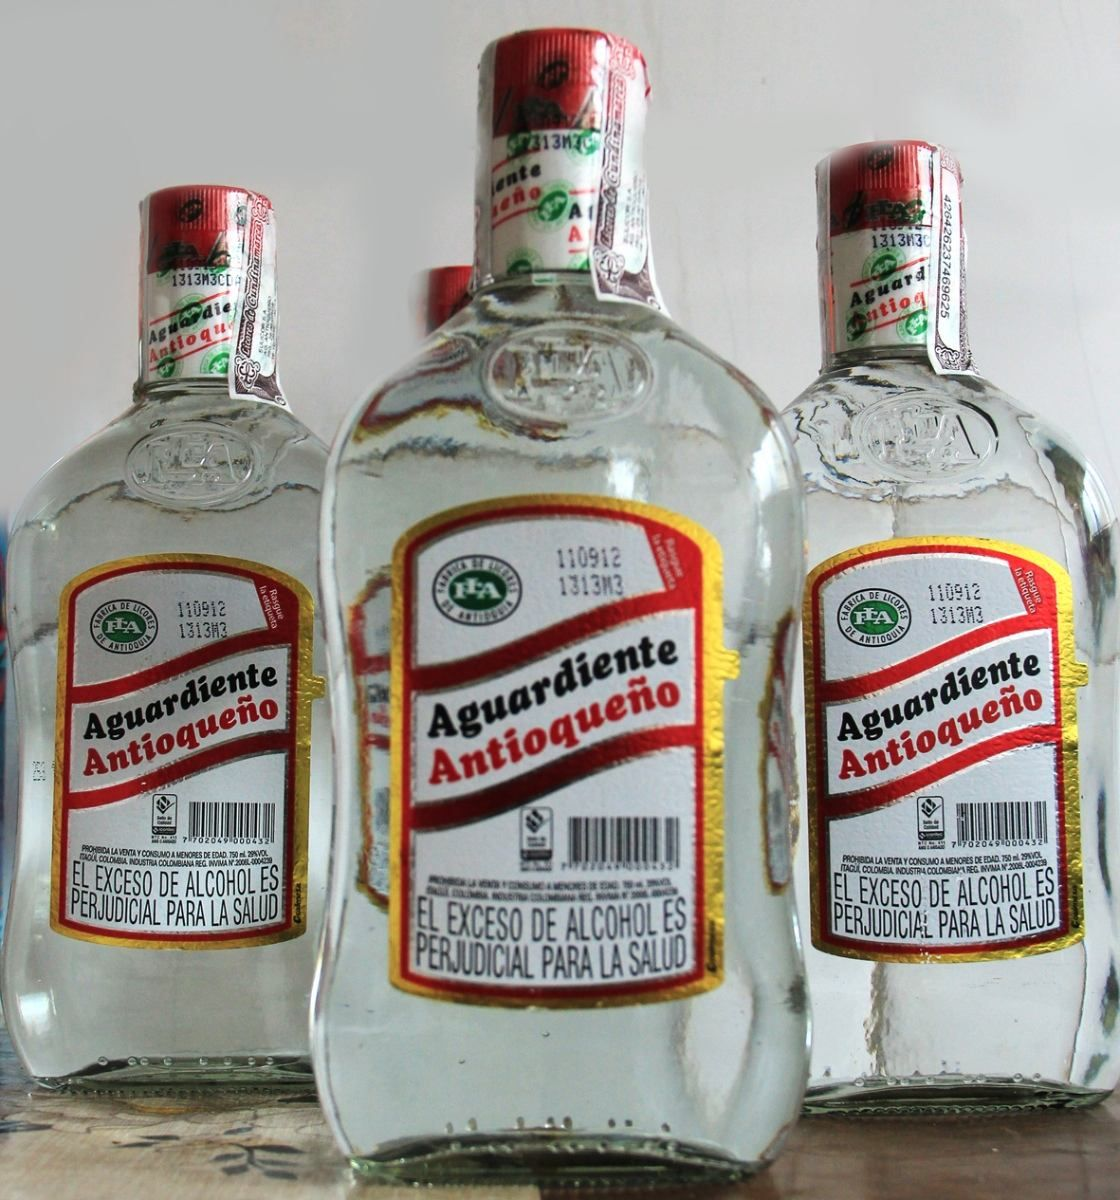 Aguardiente Colombia, colombian drinks, traditional colombian drinks, colombian beverages, drinks in colombia